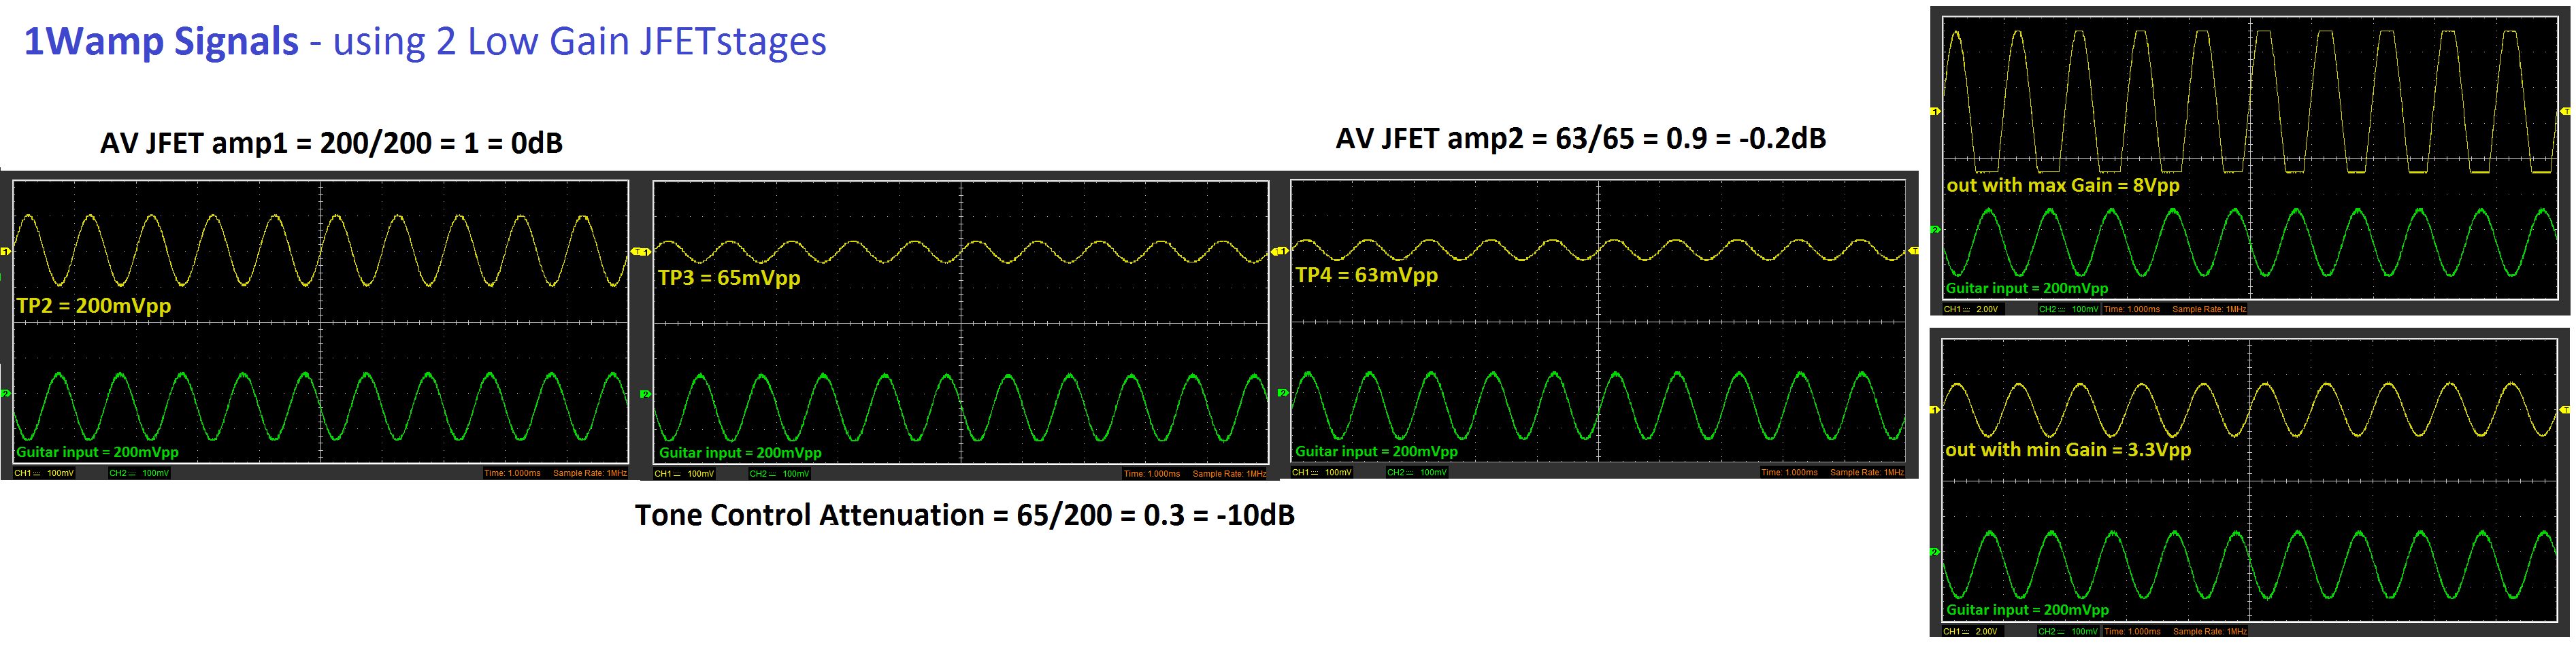 1wamp signals jfet low gain